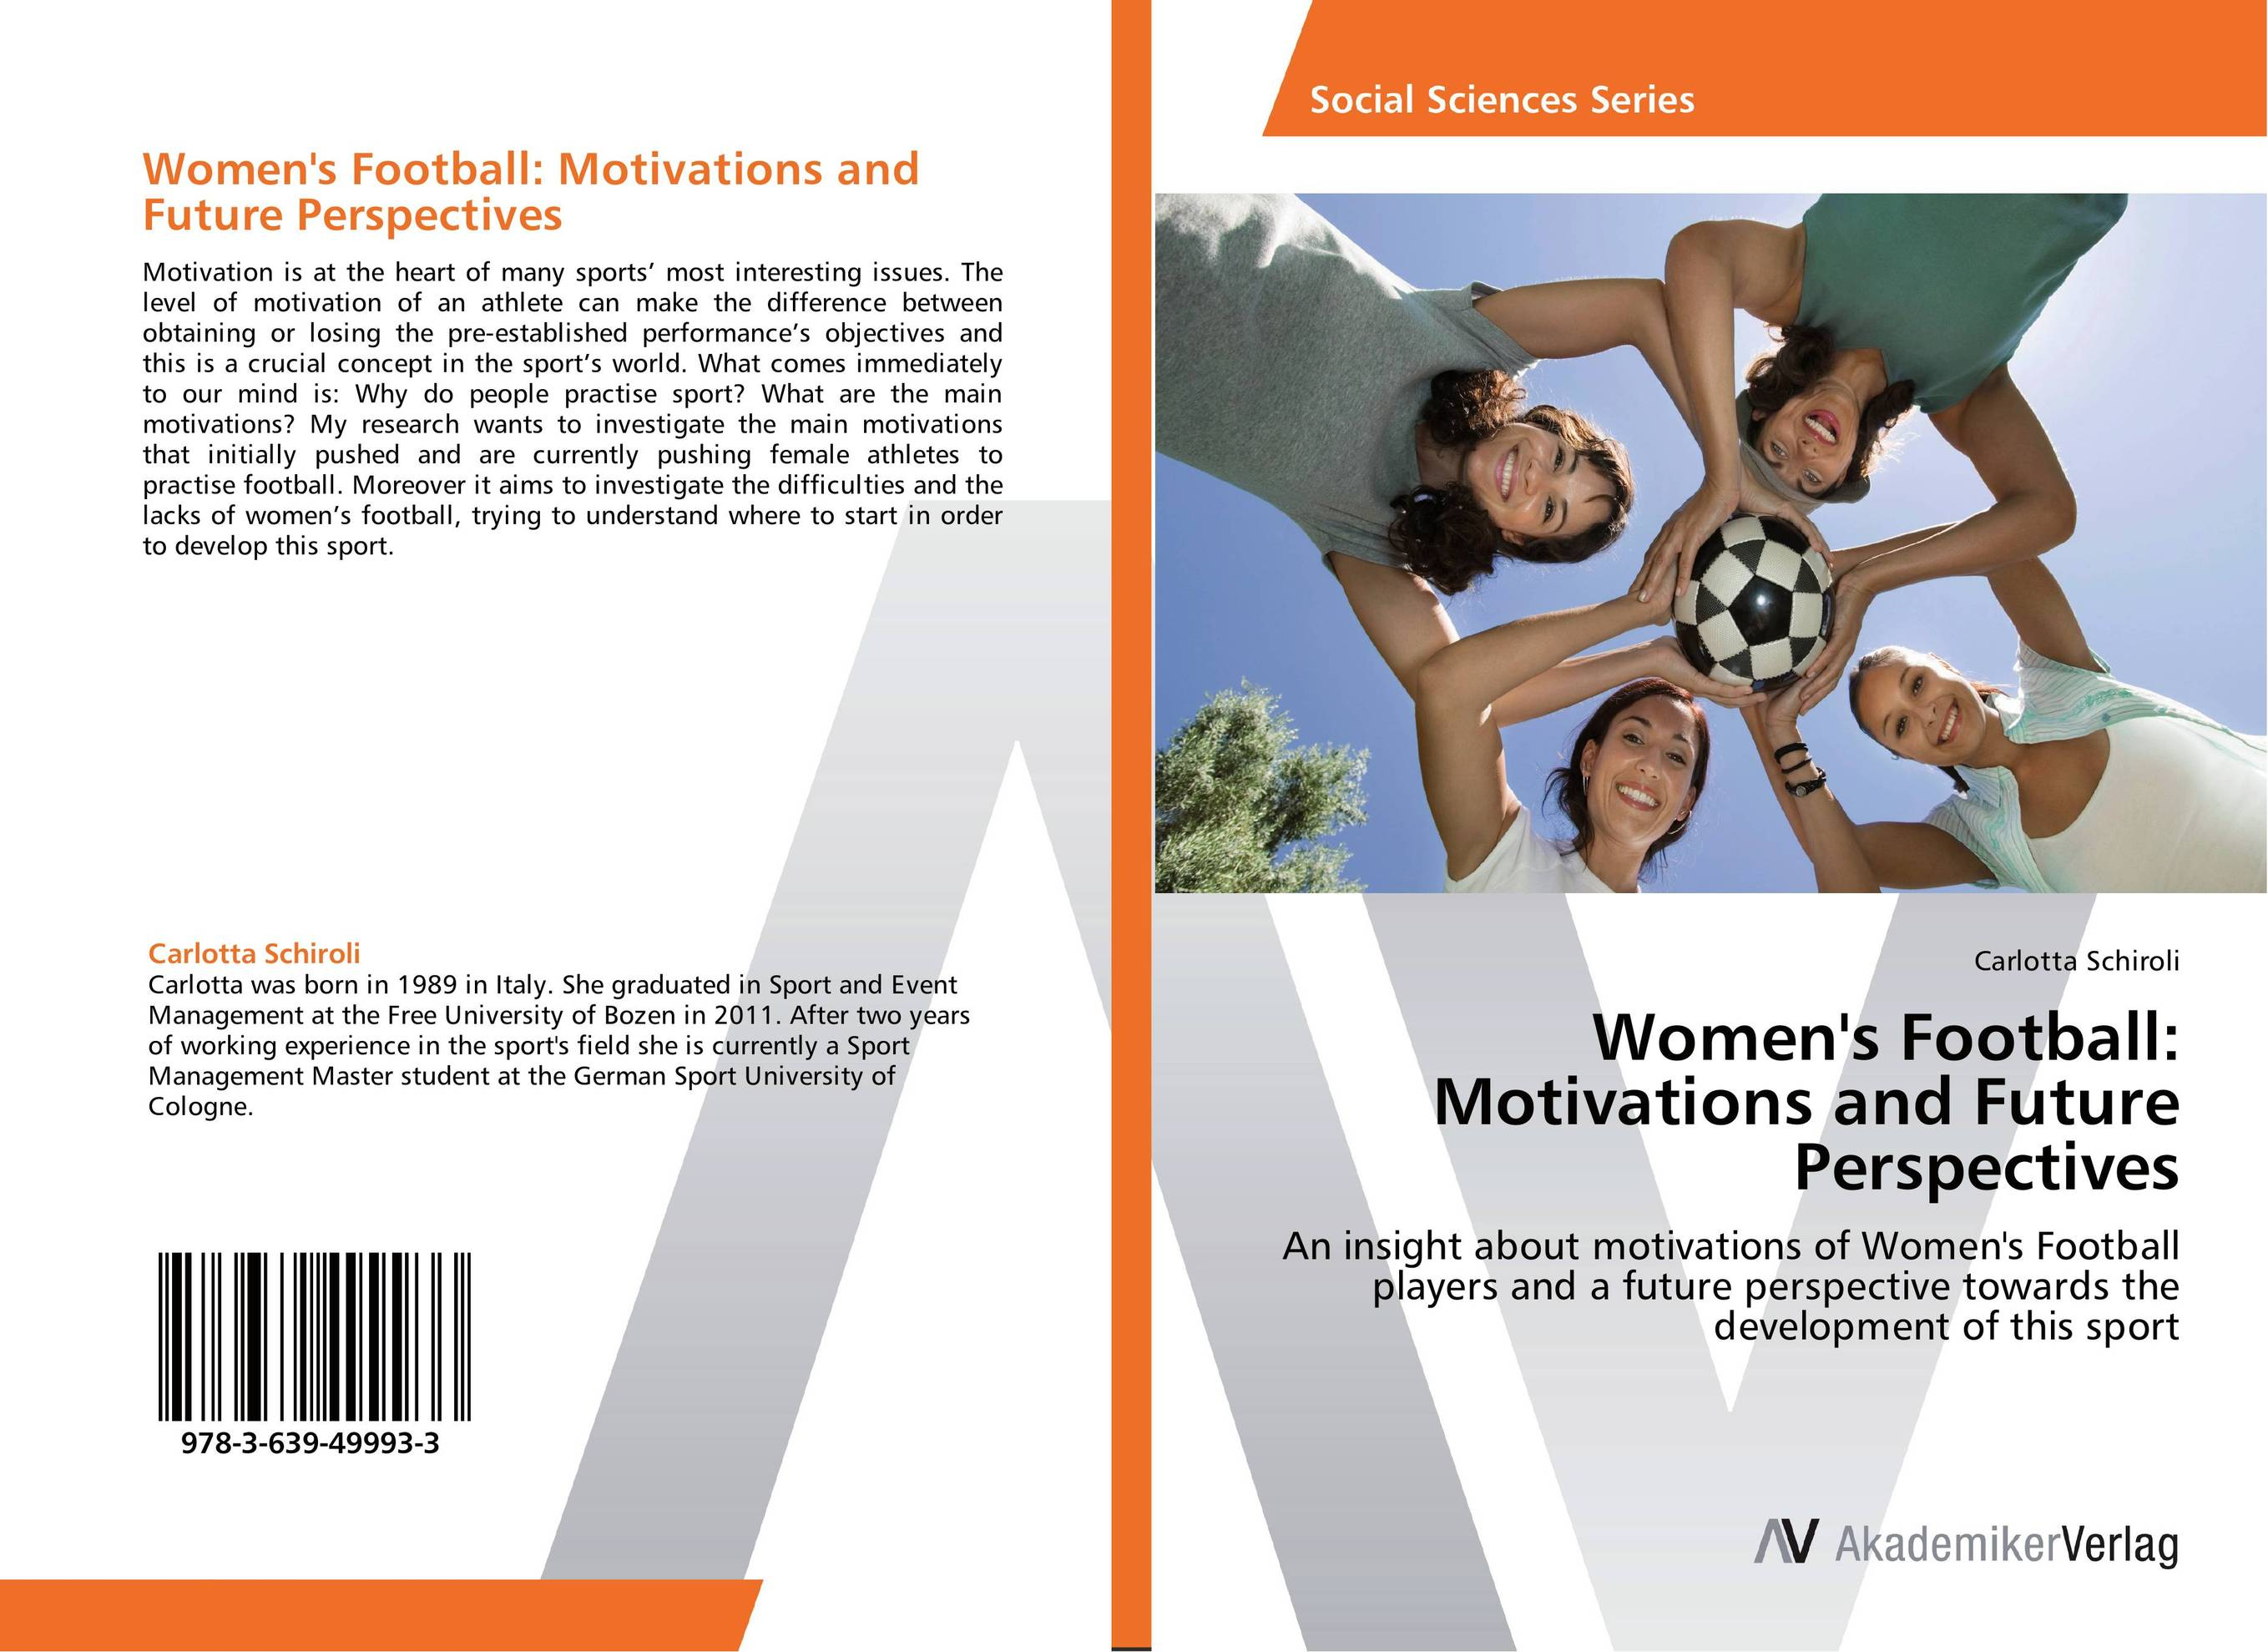 Women's Football: Motivations and Future Perspectives